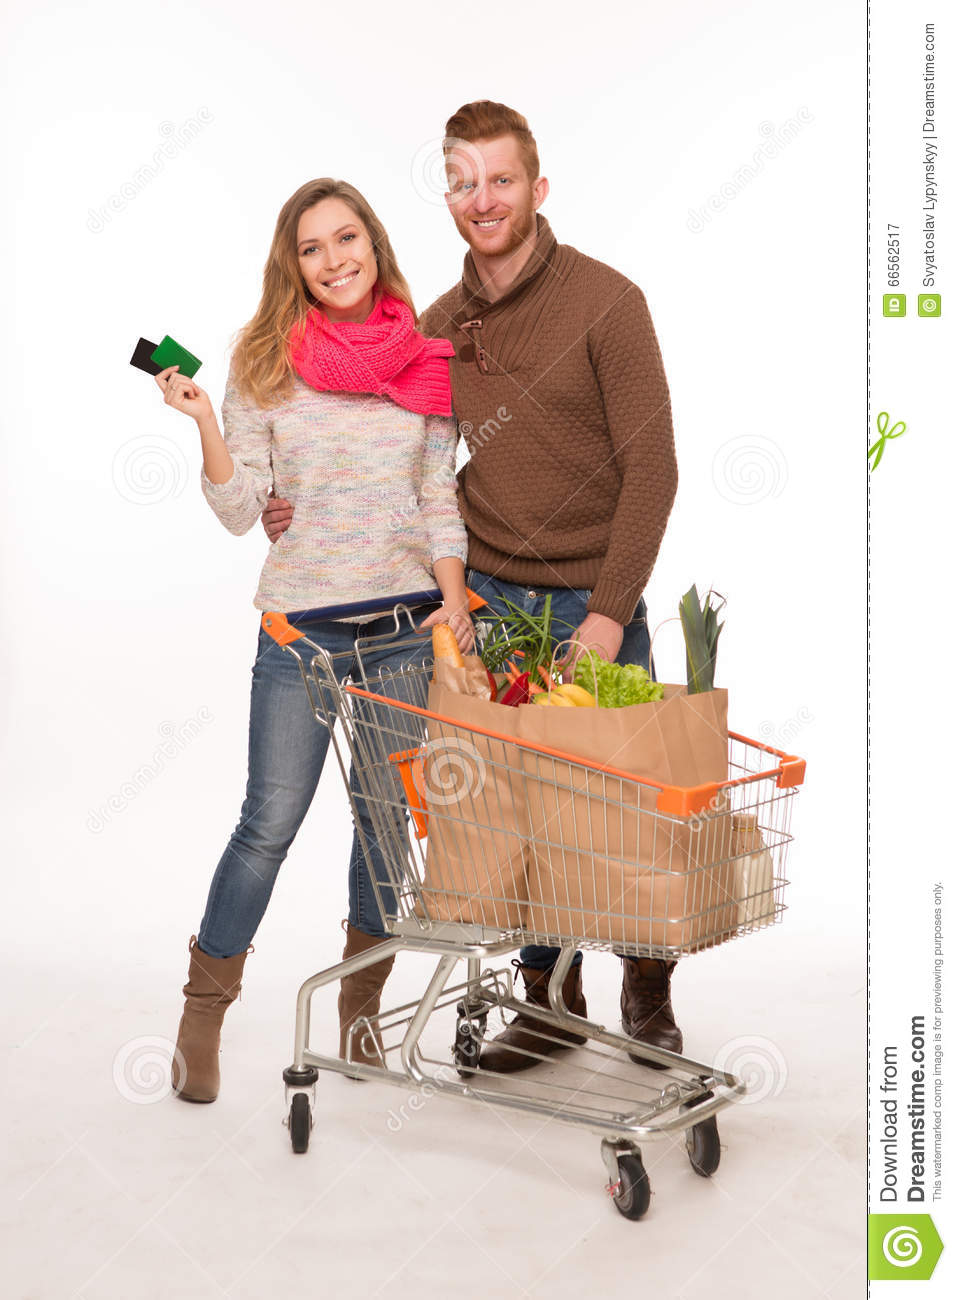 image Couple in supermarket full of people